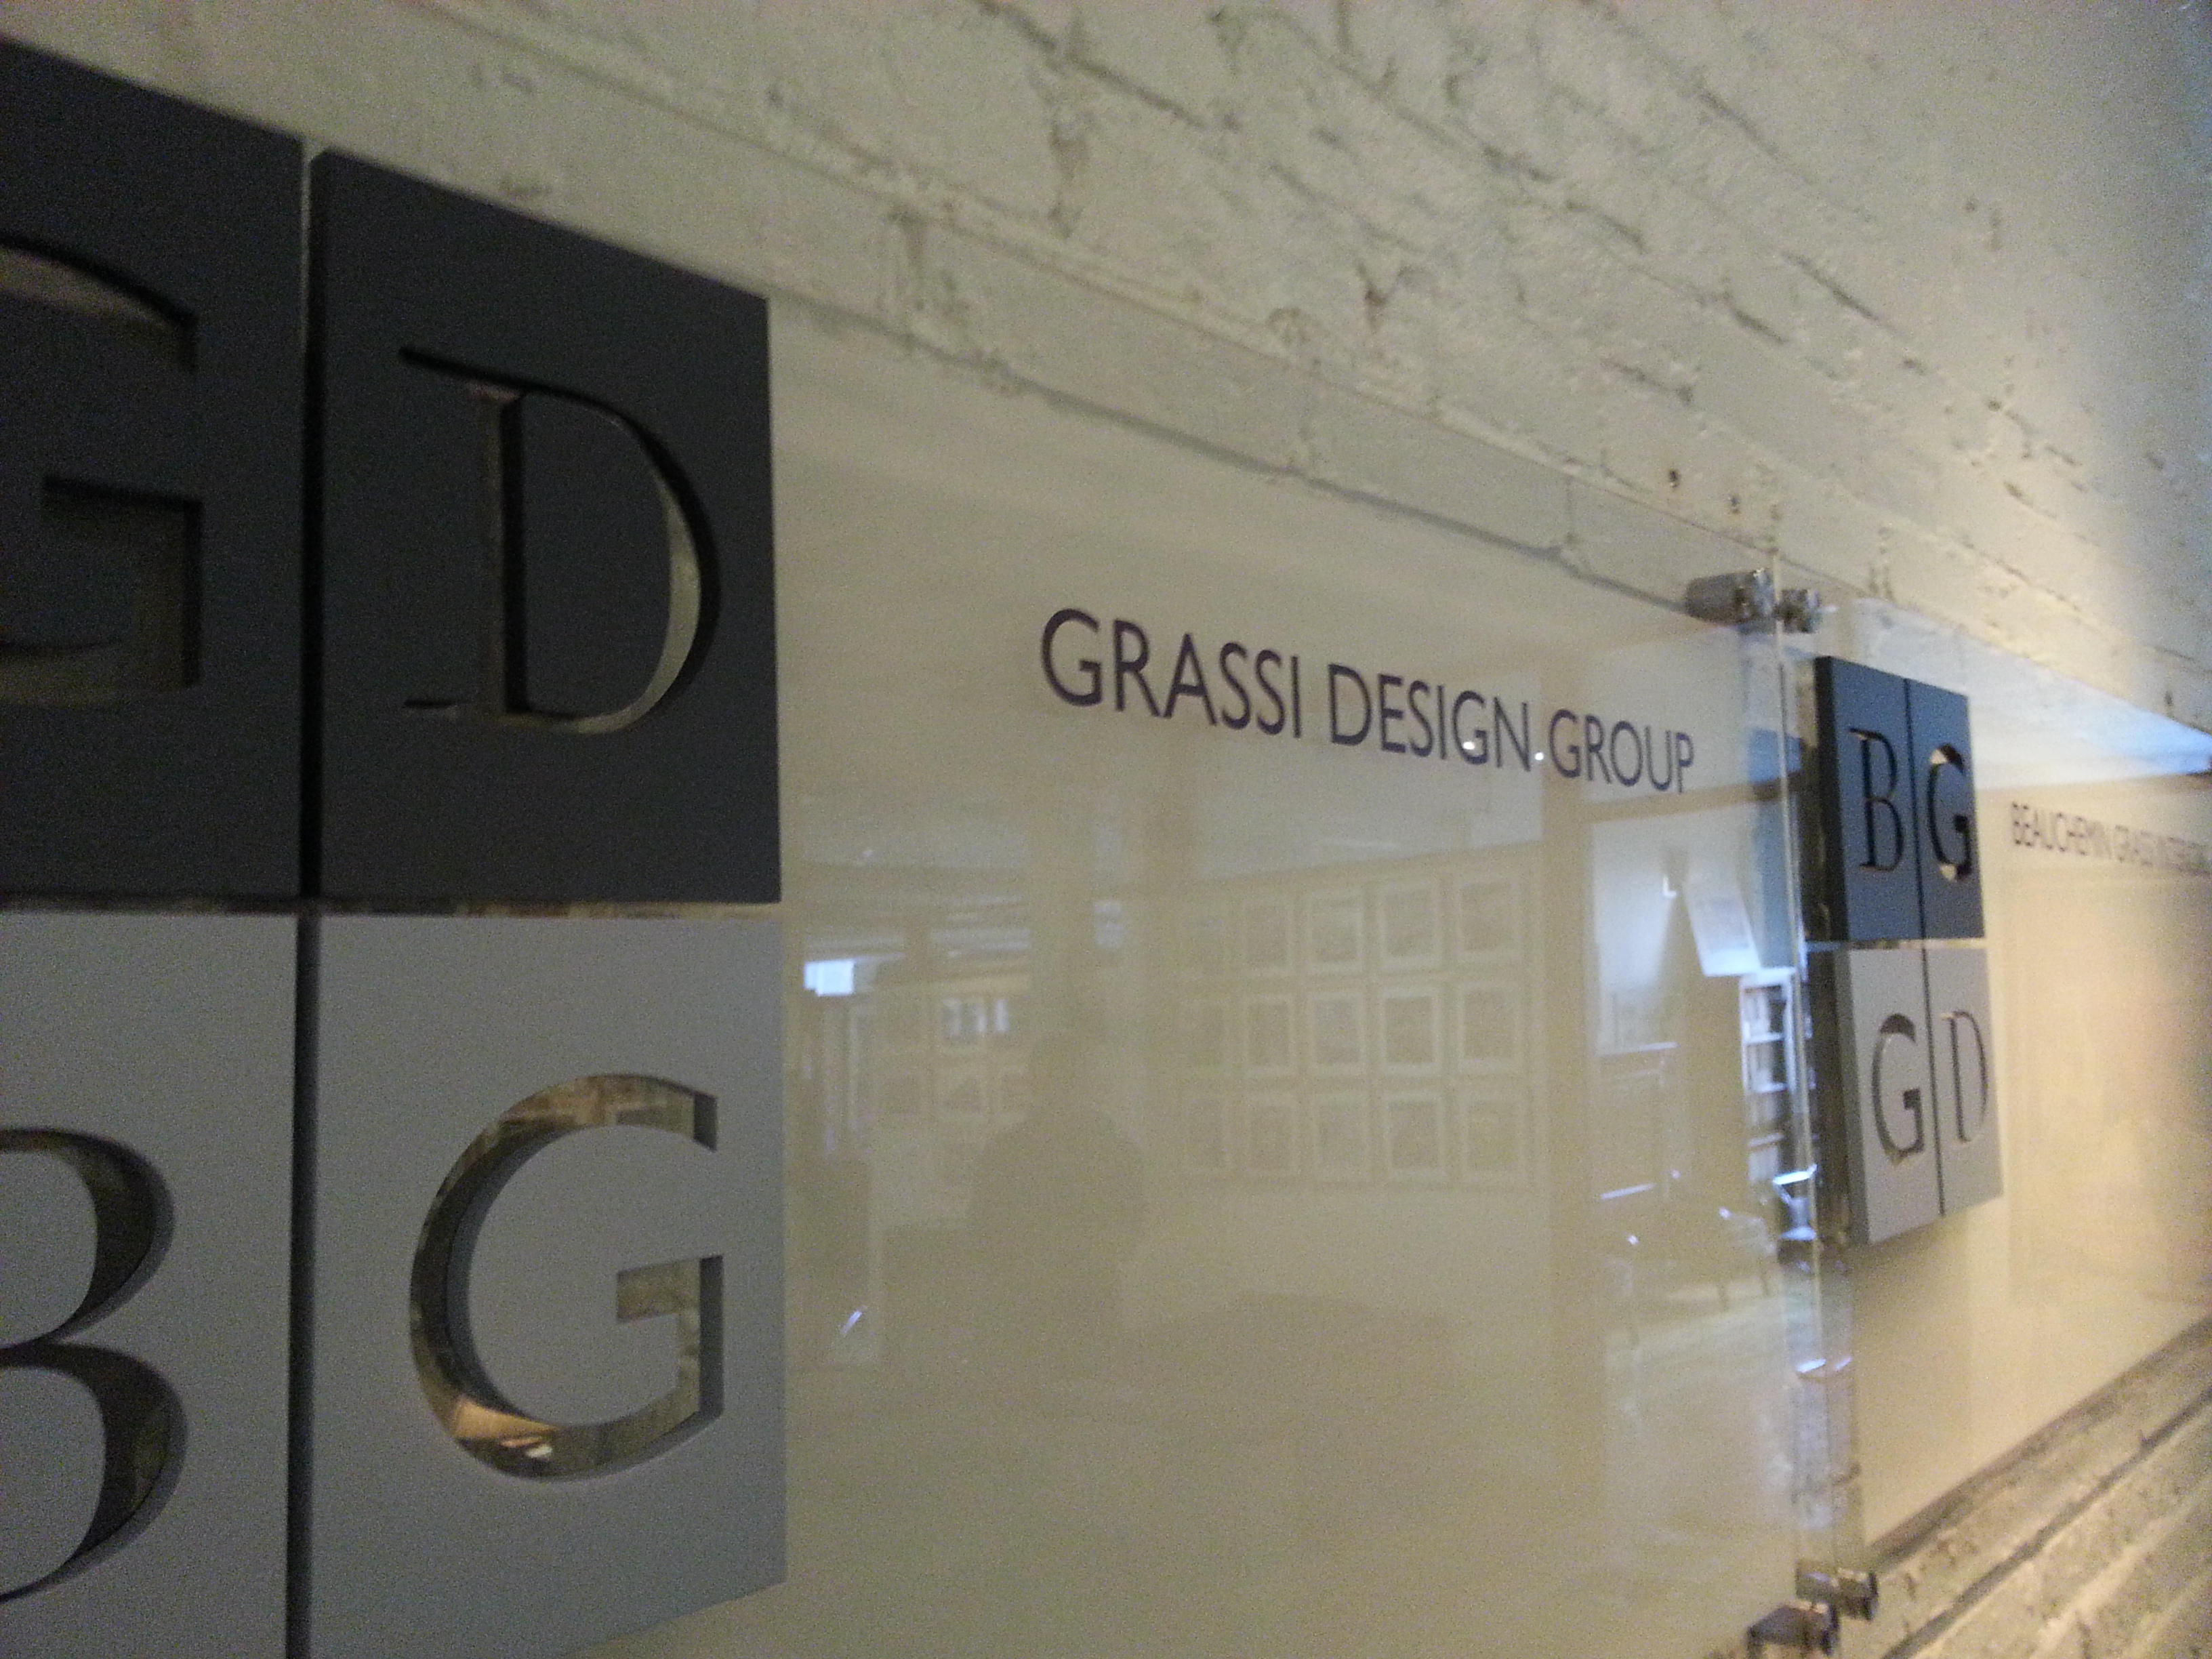 Grassi Design Group